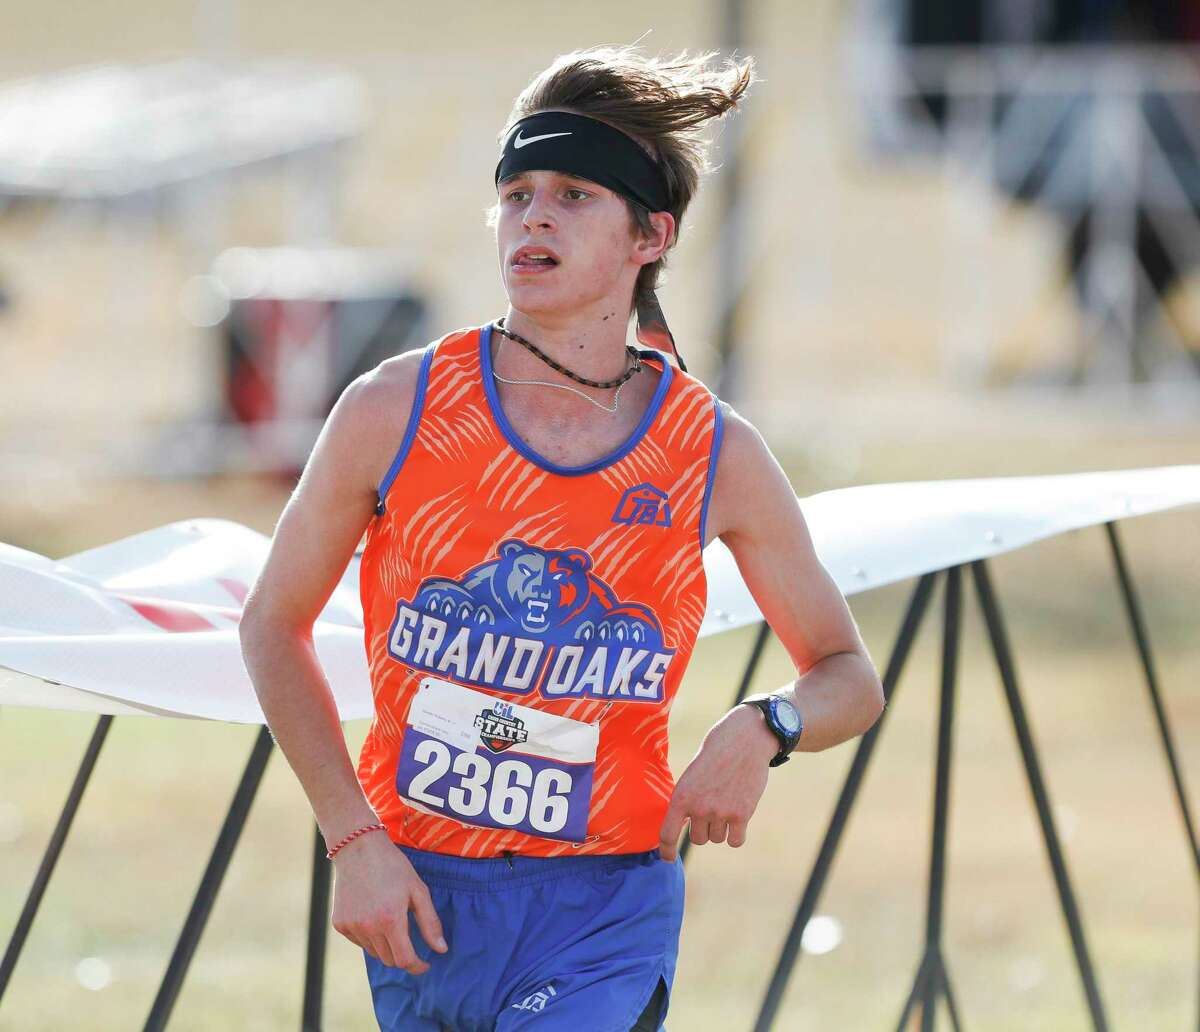 Hayden Eubank of Grand Oaks competes in the Class 6A race during the UIL State Cross Country Championships at Old Settlers Park, Tuesday, Nov. 24, 2020, in Round Rock.